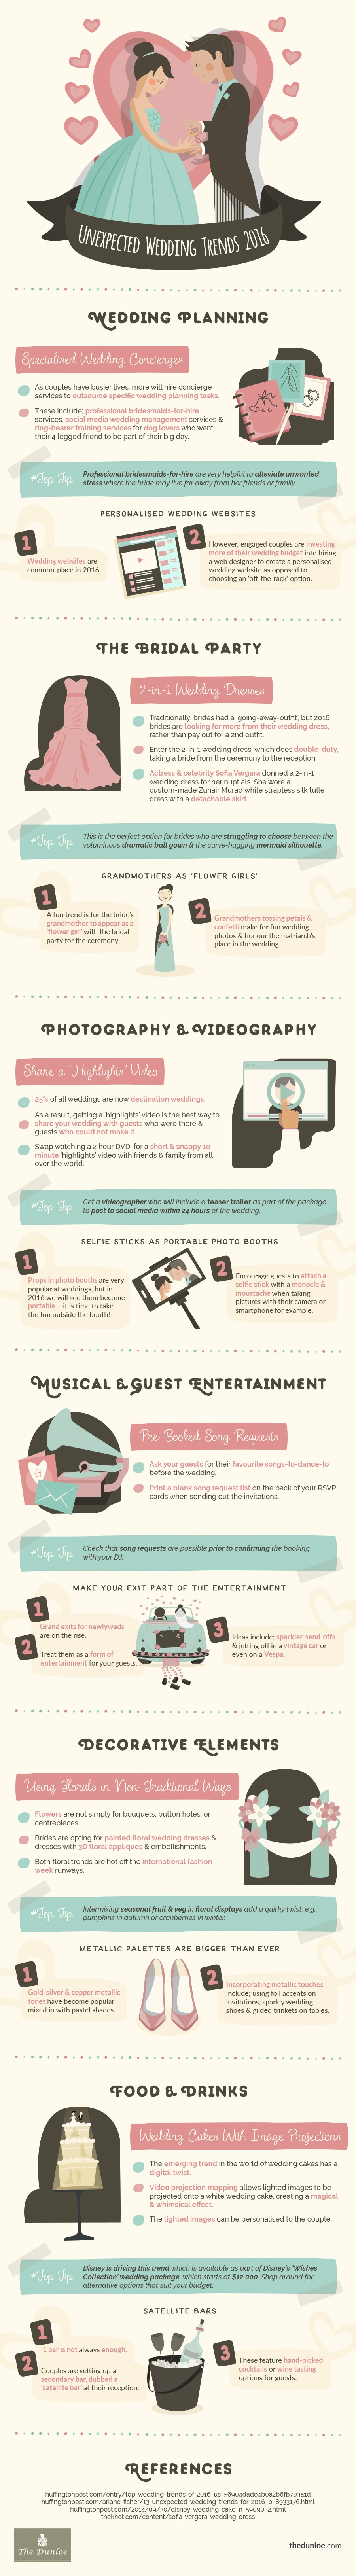 Unexpected Wedding Trends 2016-infographic